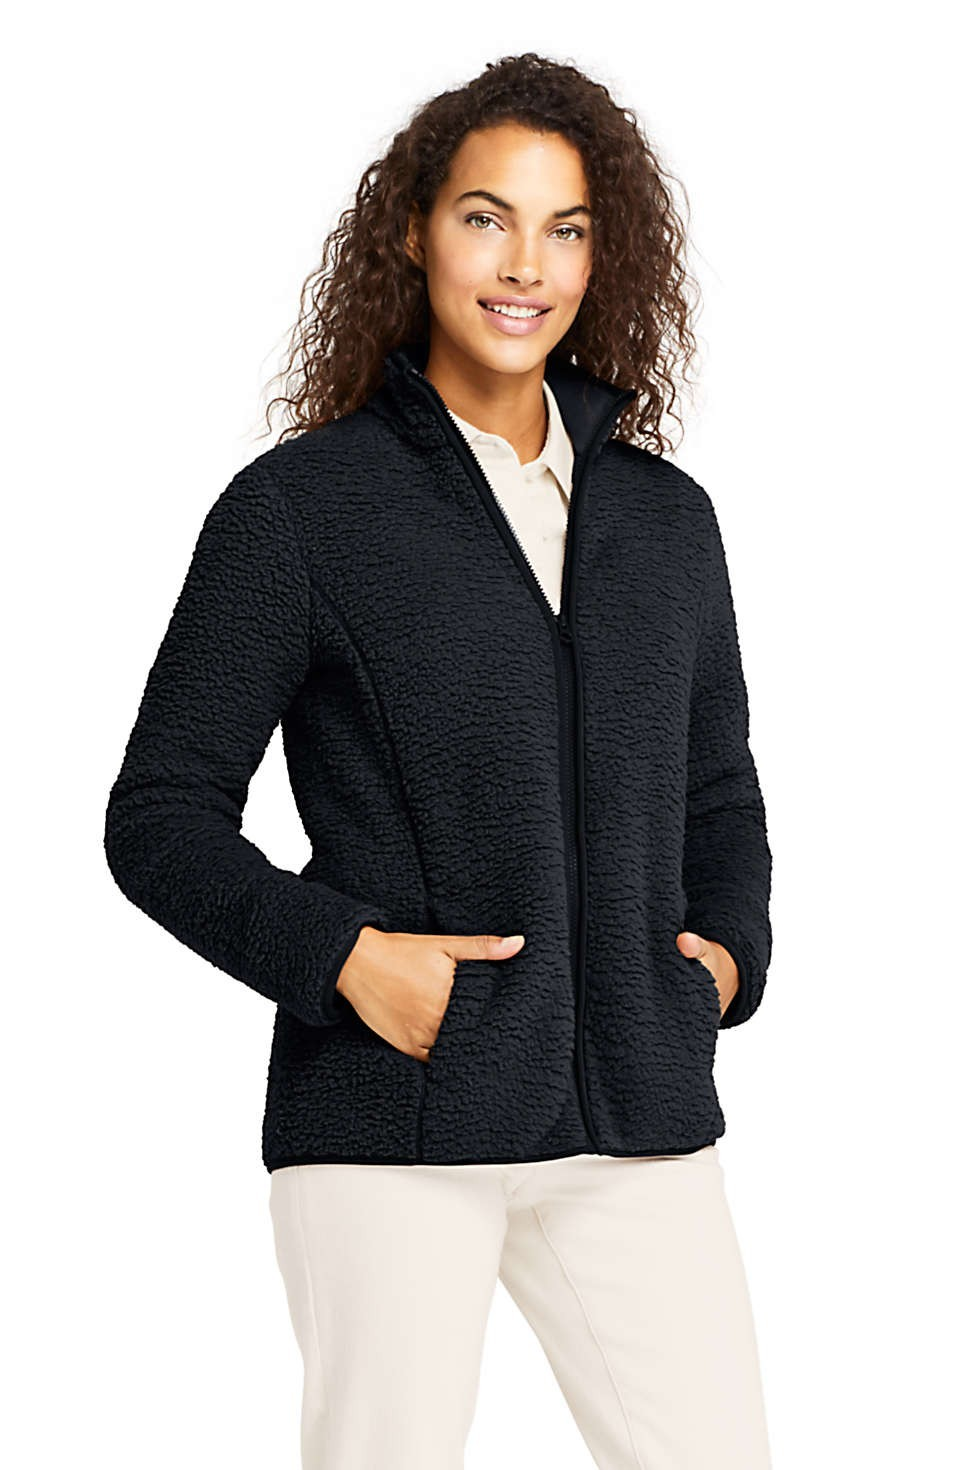 3 Pallets of Women's & Men's Fleece & Synthetic Outerwear & More Ext. Retail $44,299, Dodgeville, WI